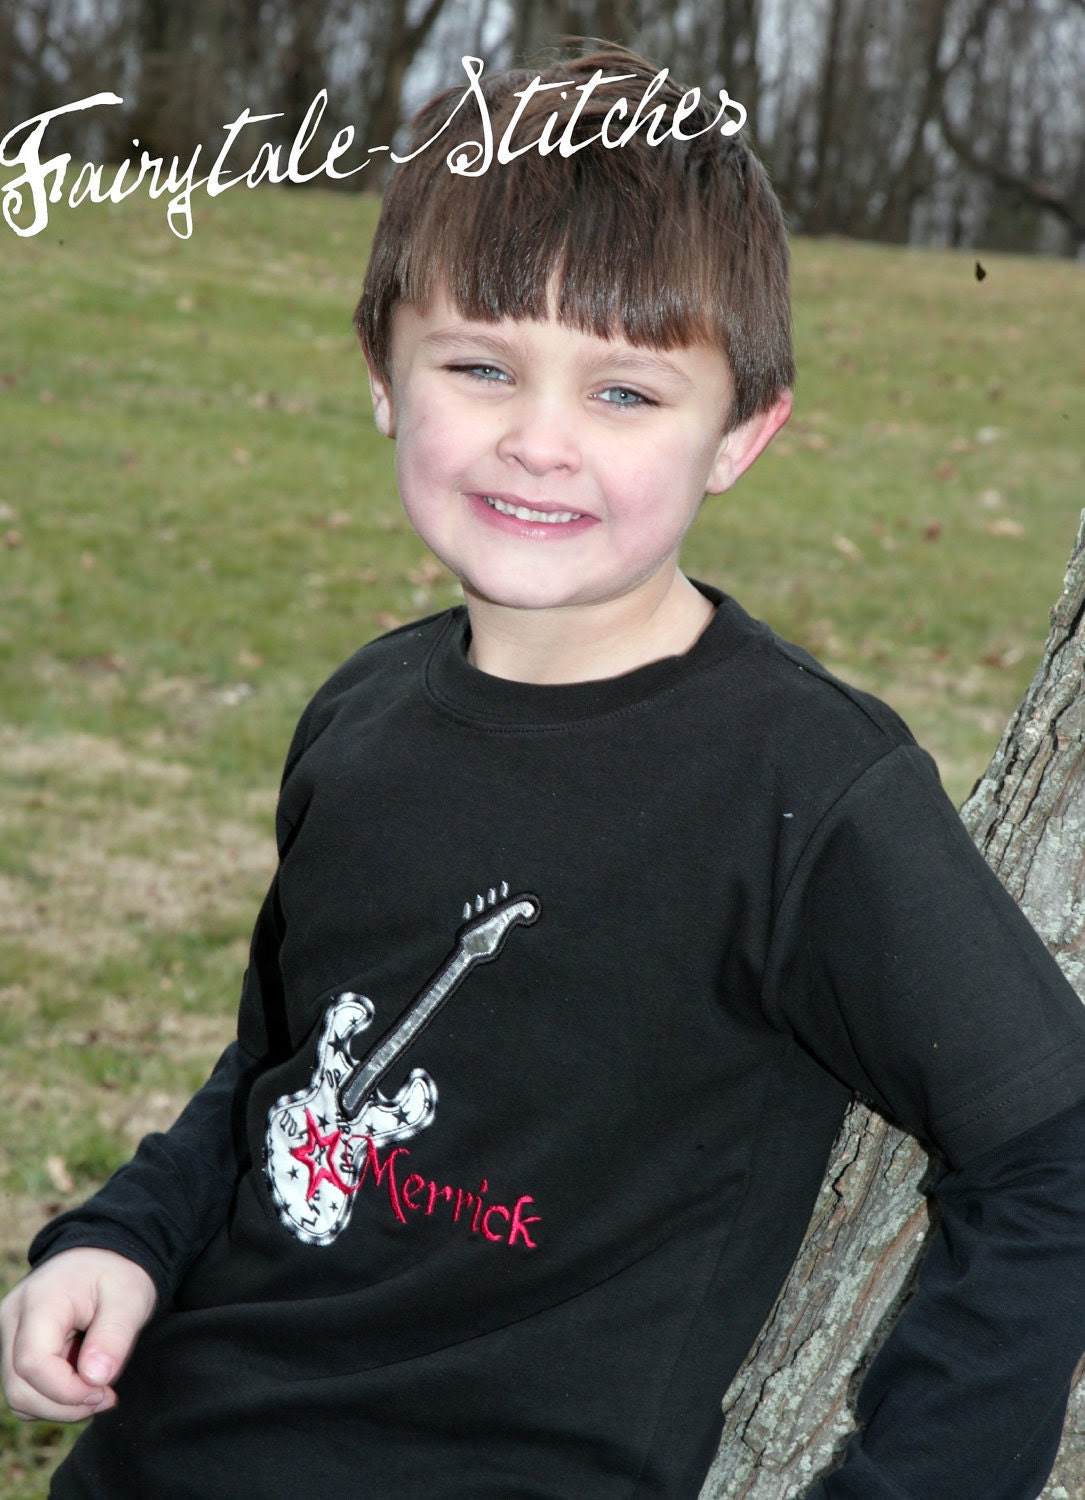 Boys Personalized Boutique Guitar Tshirt great for guitar birthday shirt